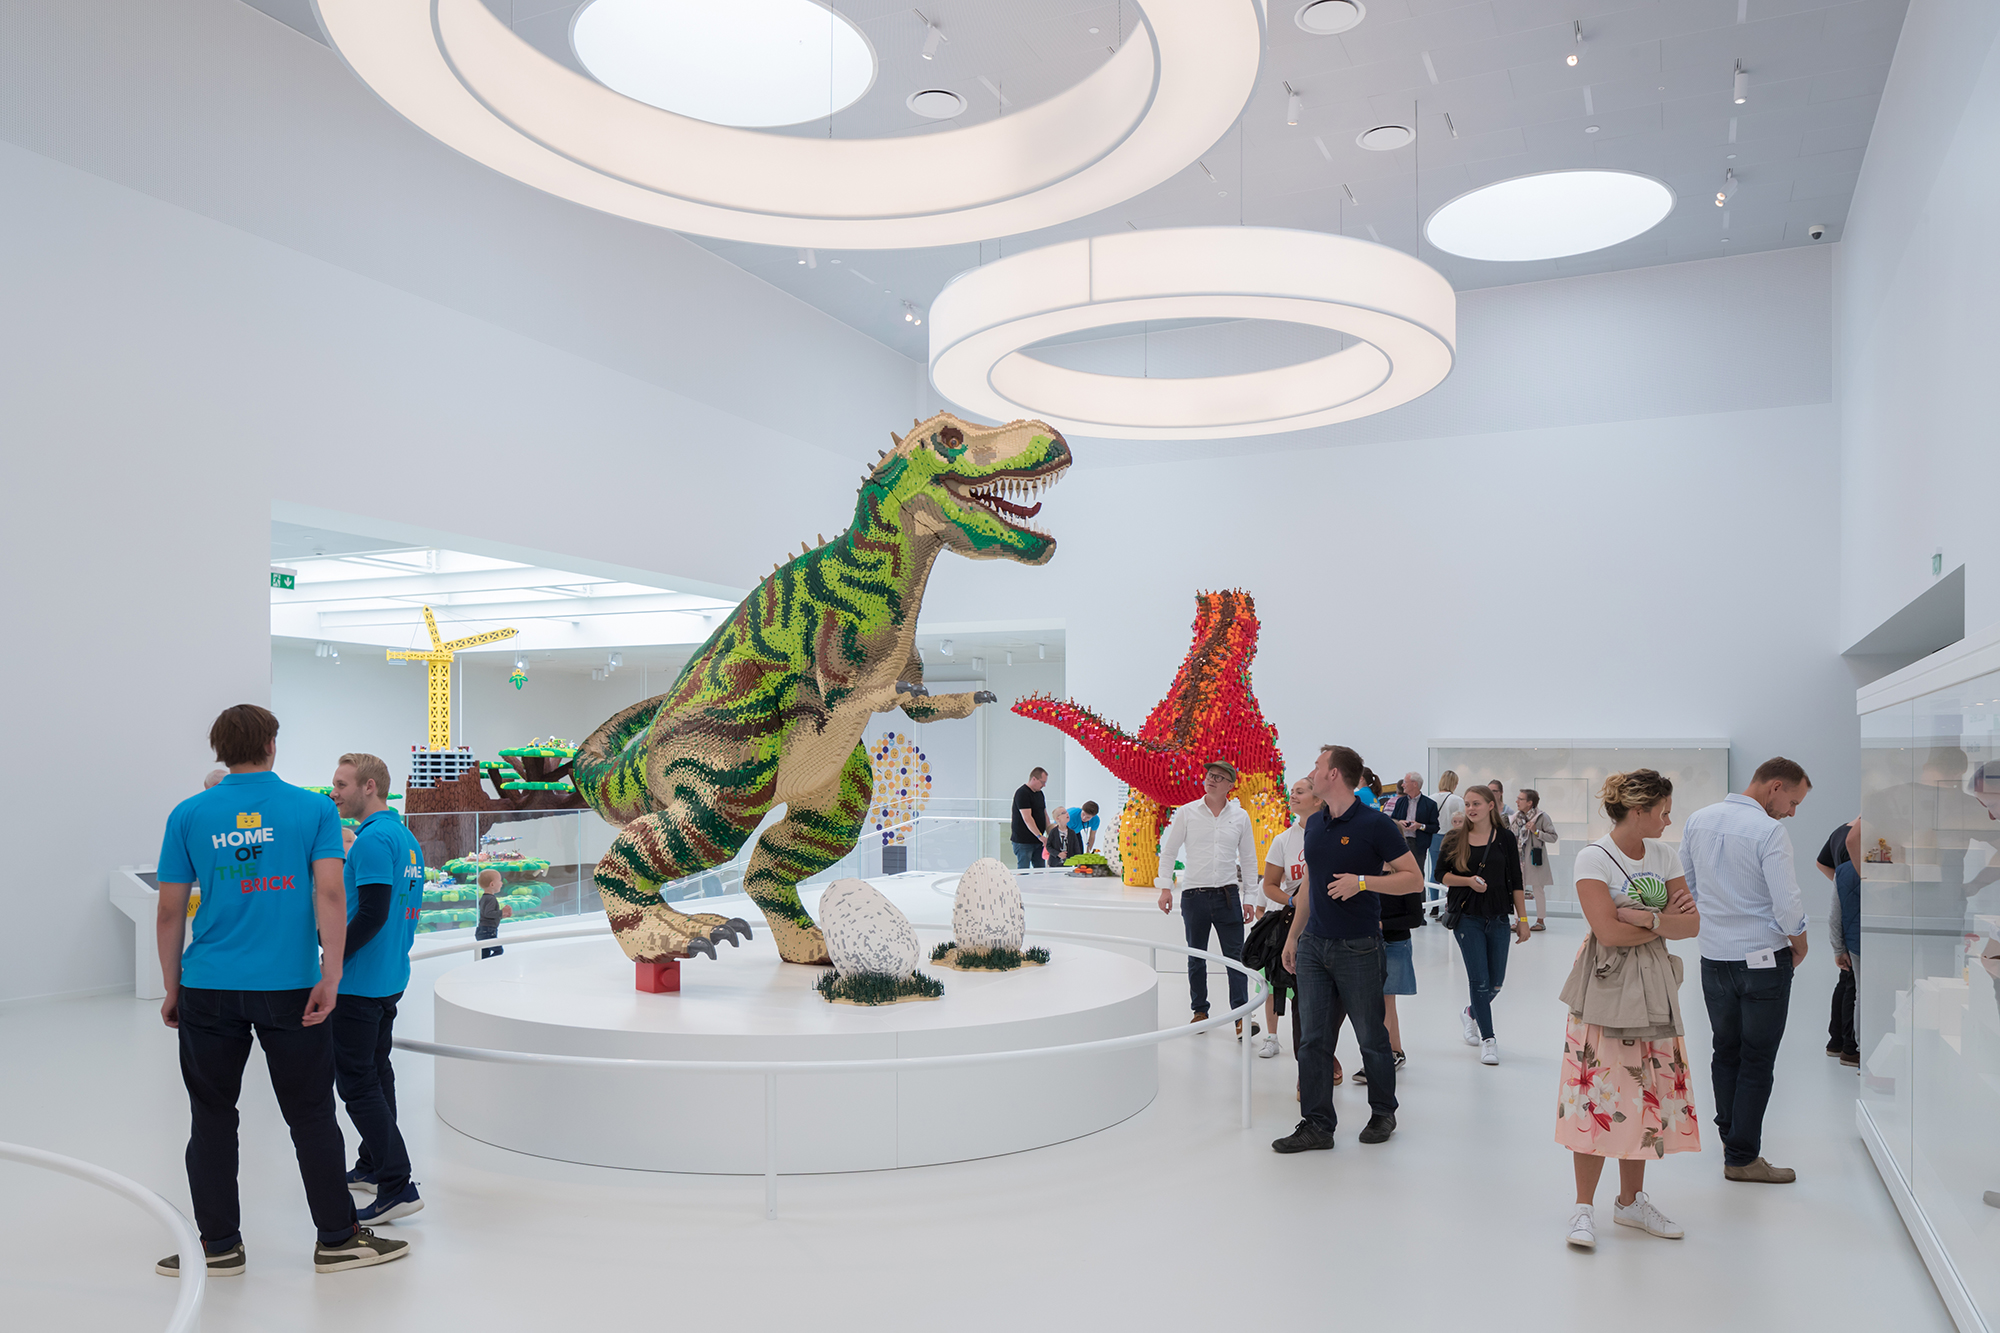 Interior of the LEGO house by BIG - Bjarke Ingles Group